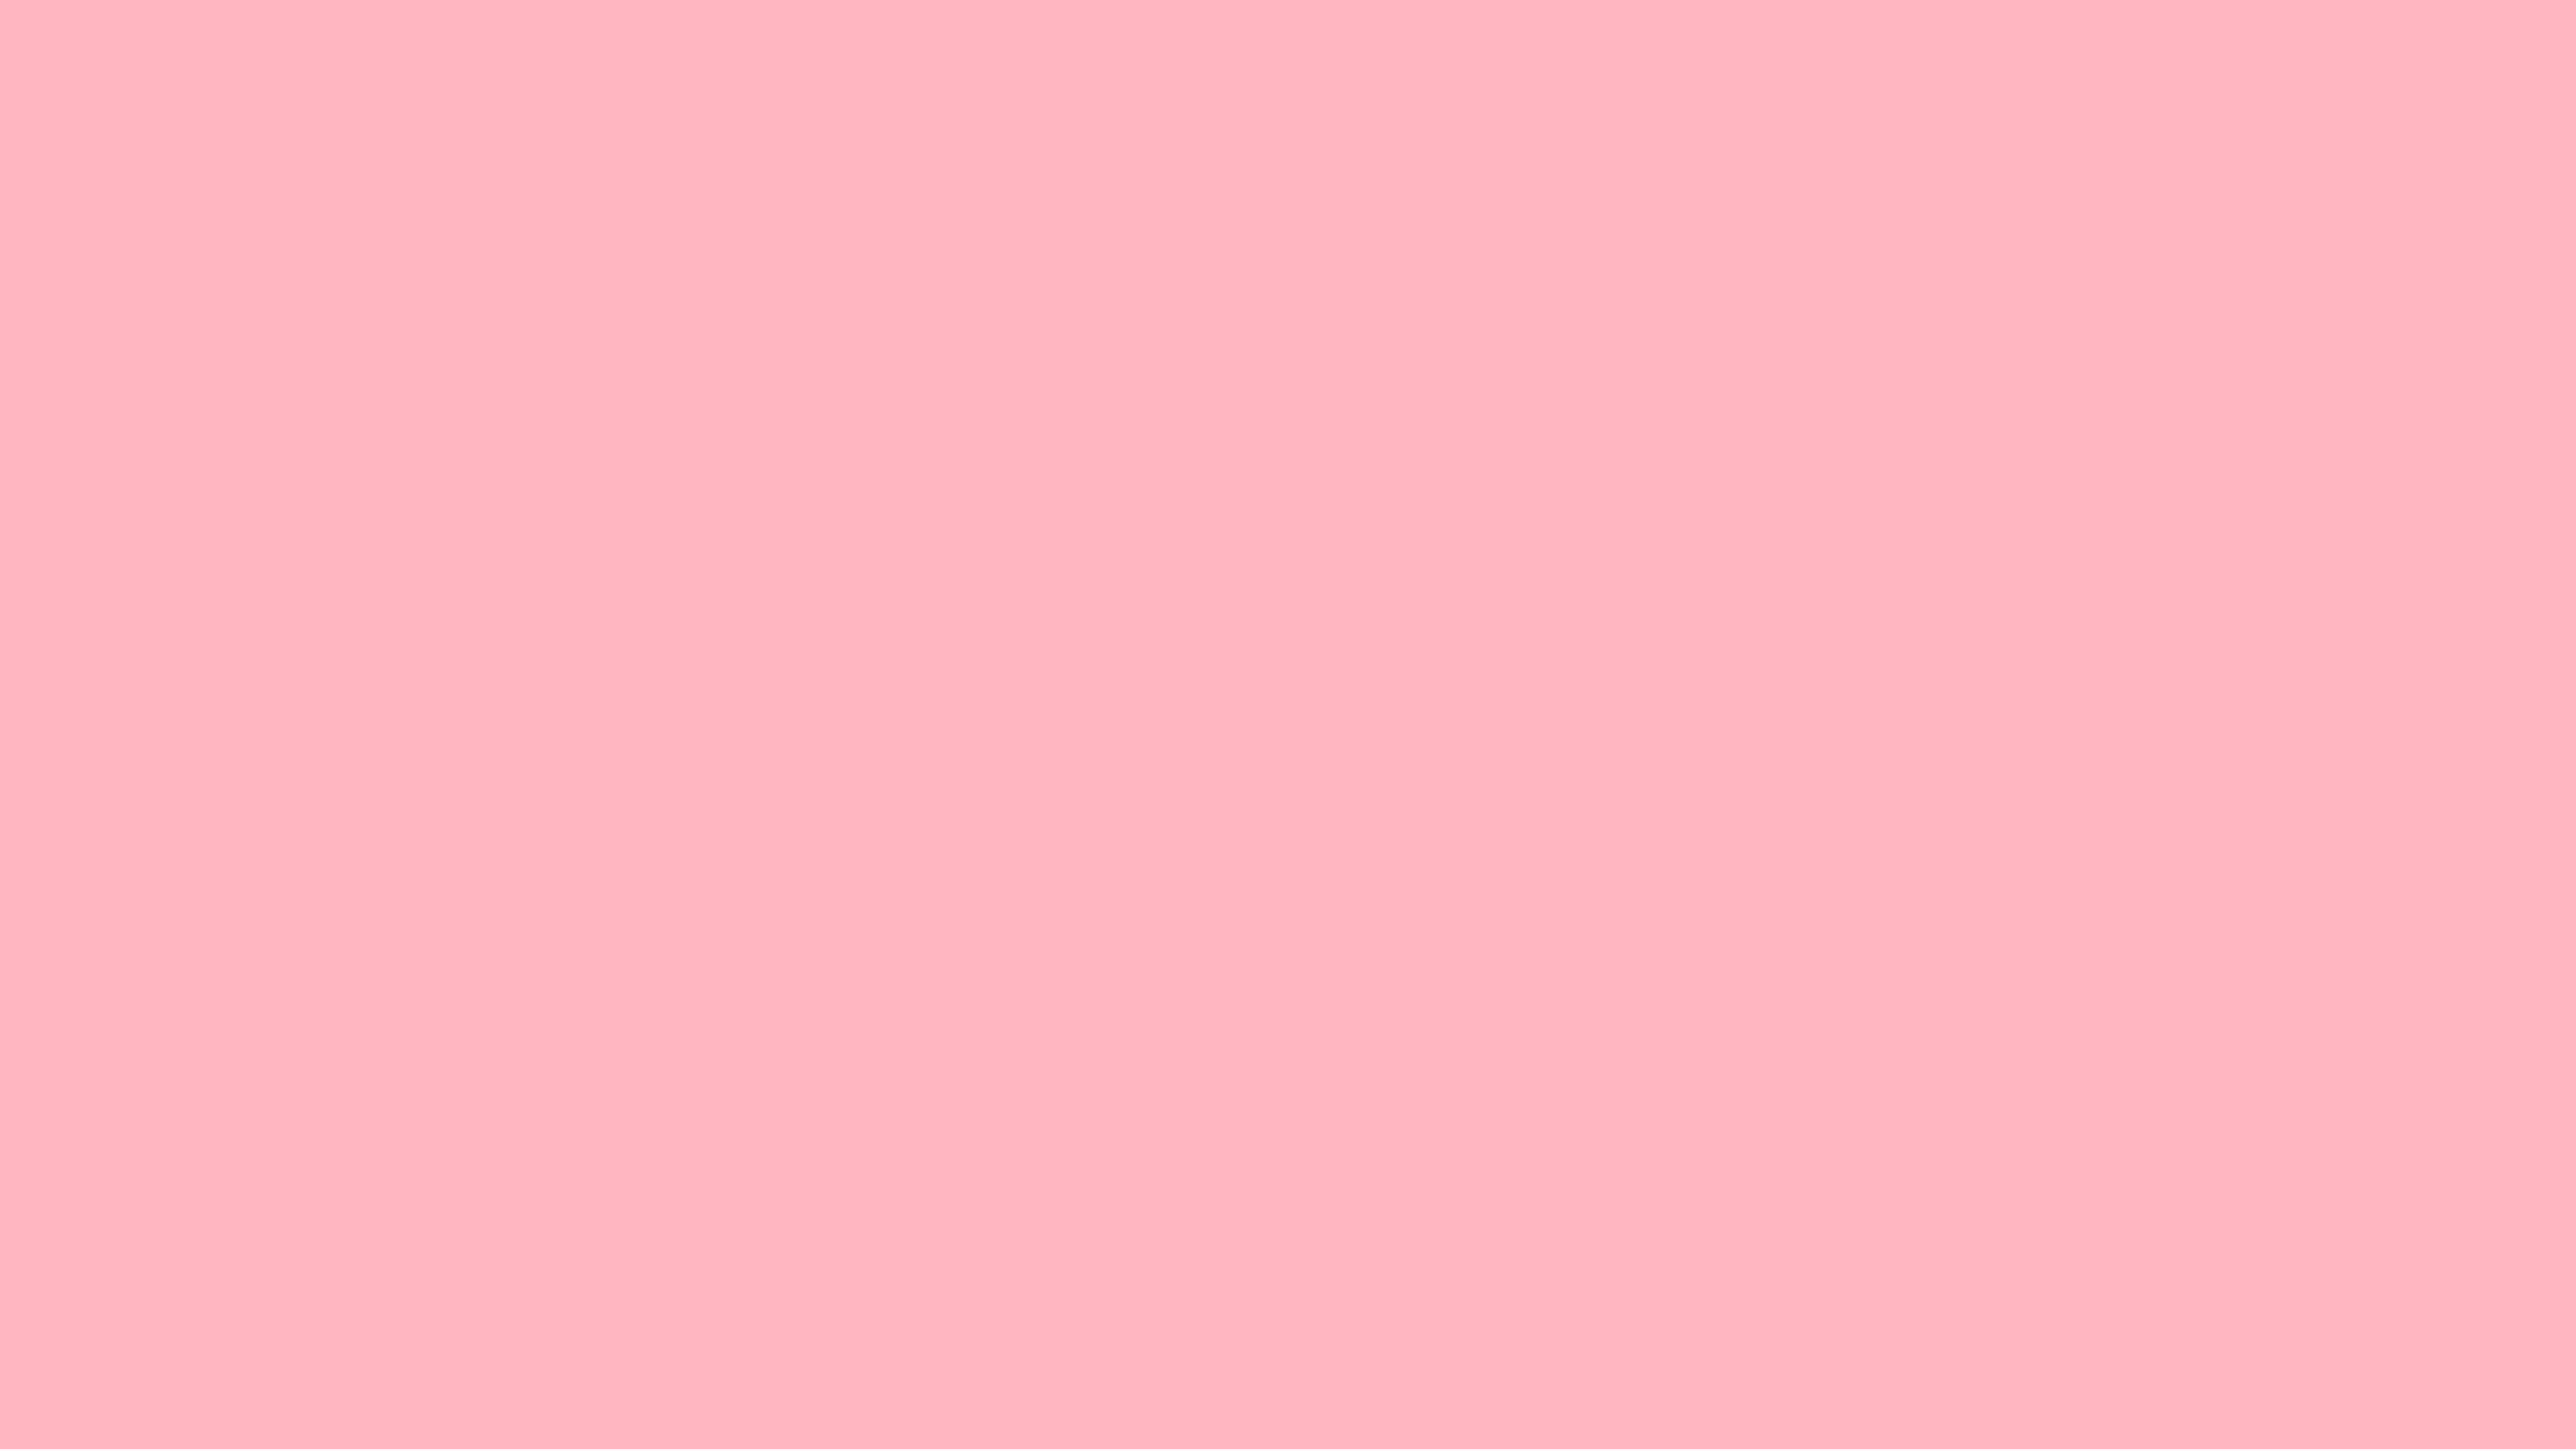 3840x2160 Light Pink Solid Color Background